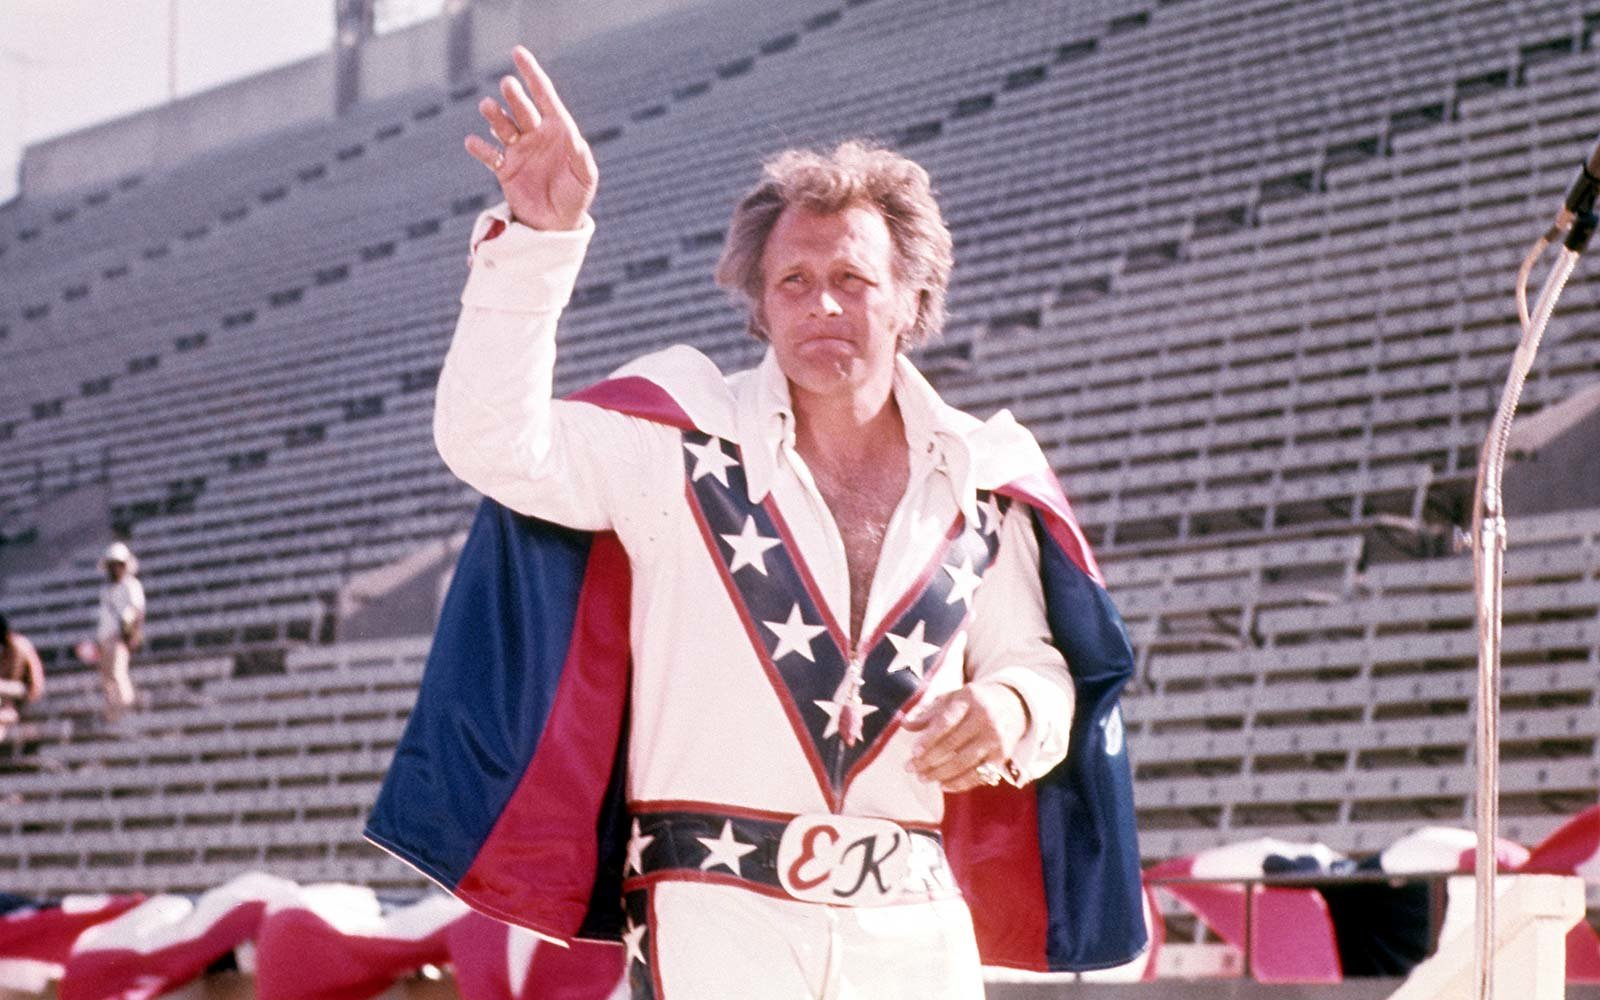 American daredevil and entertainer Evel Knievel poses for a portrait before a stunt in circa 1976